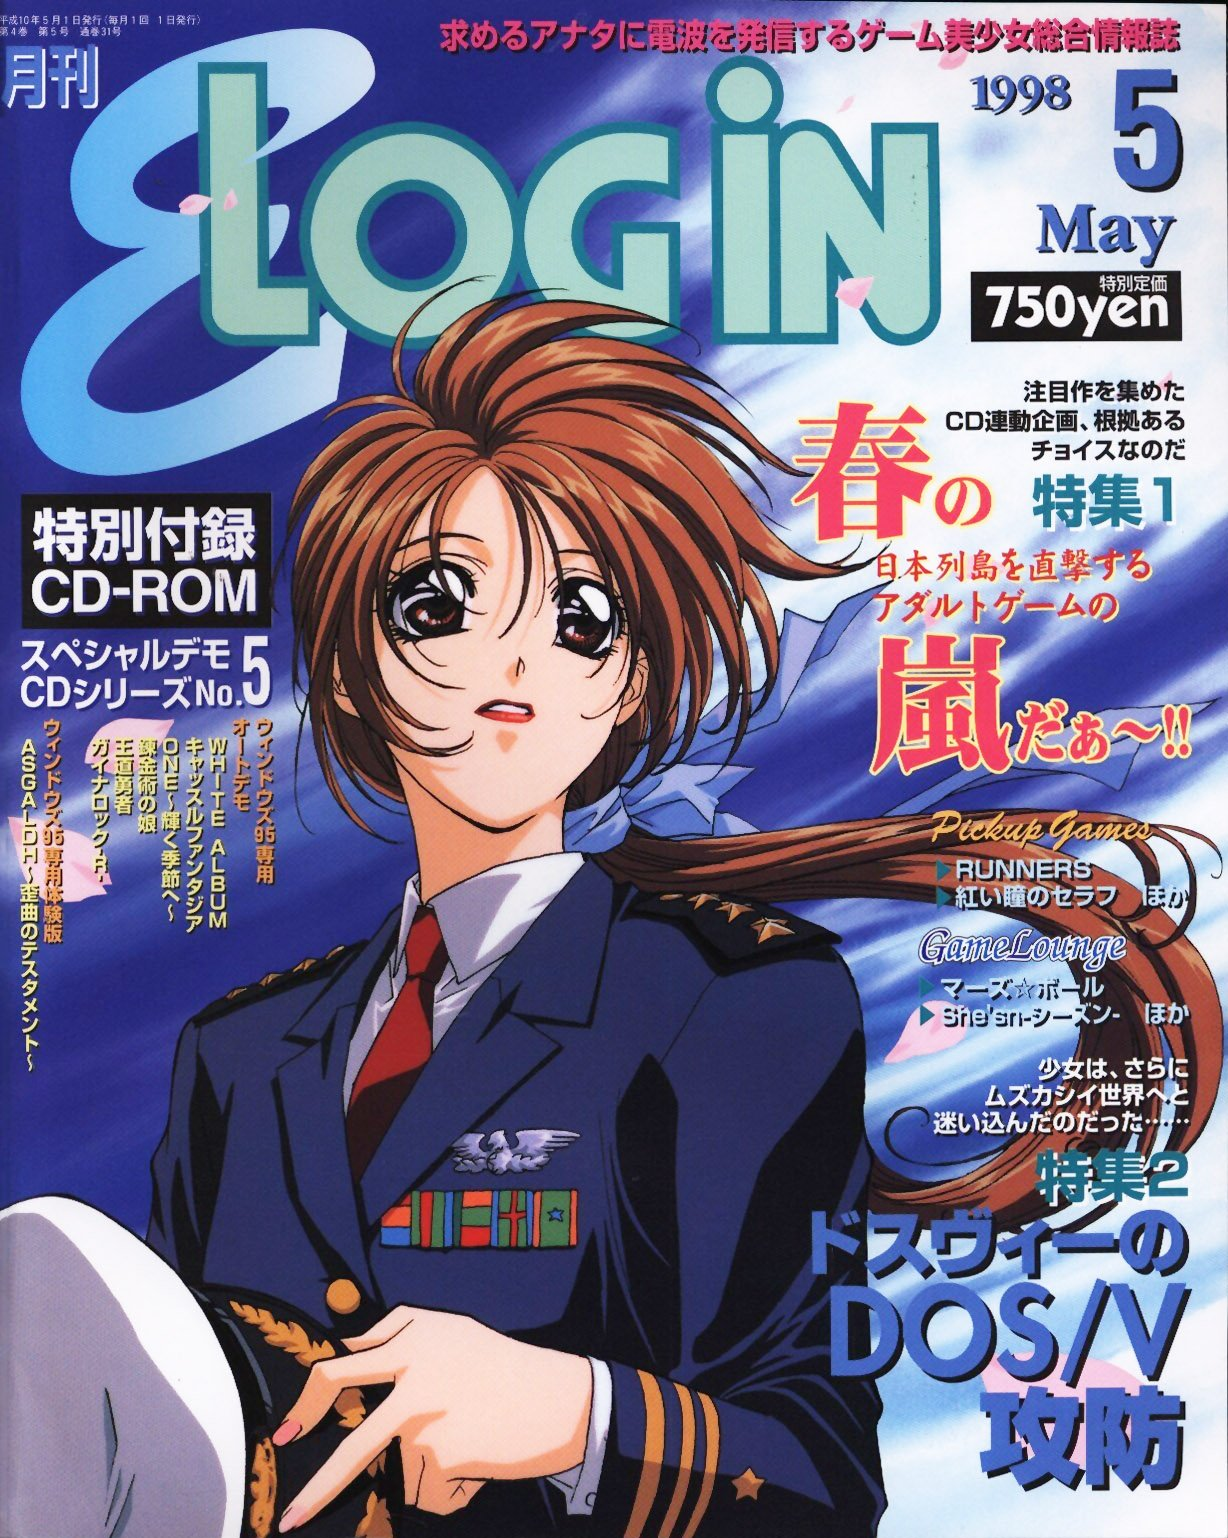 E-Login Issue 031 (May 1998)